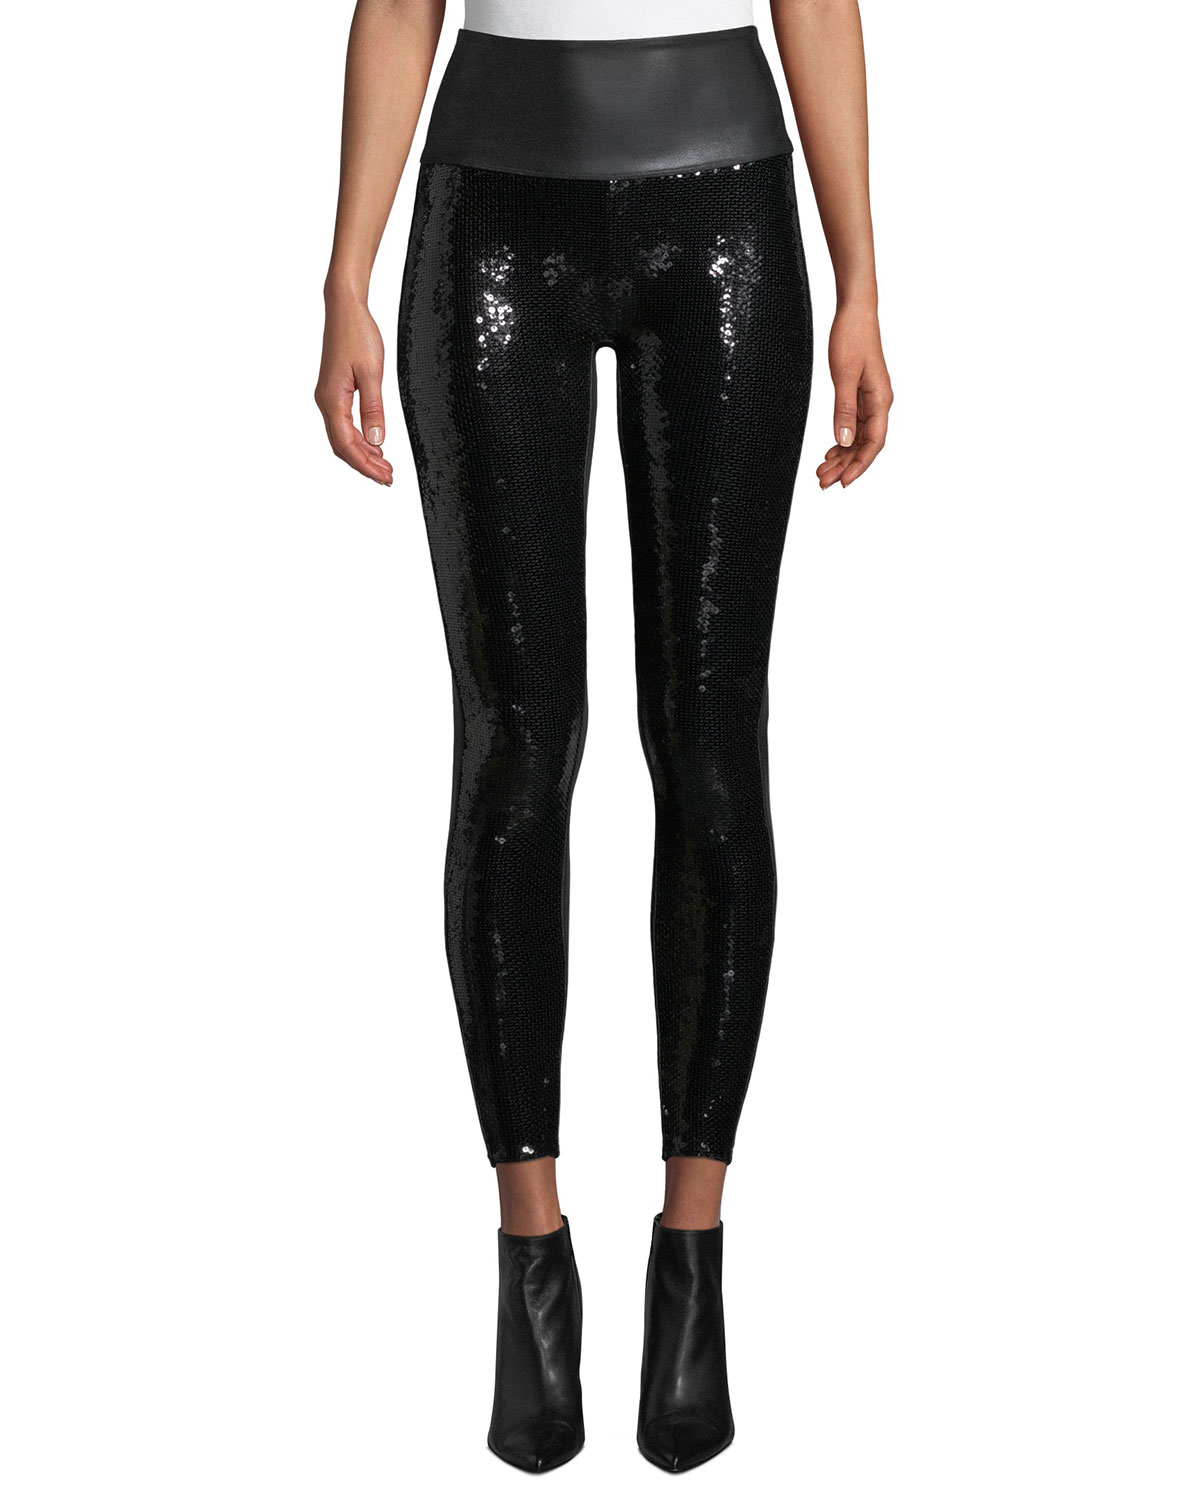 5169facee1ca Spanx Faux-Leather Sequin High-Rise Leggings